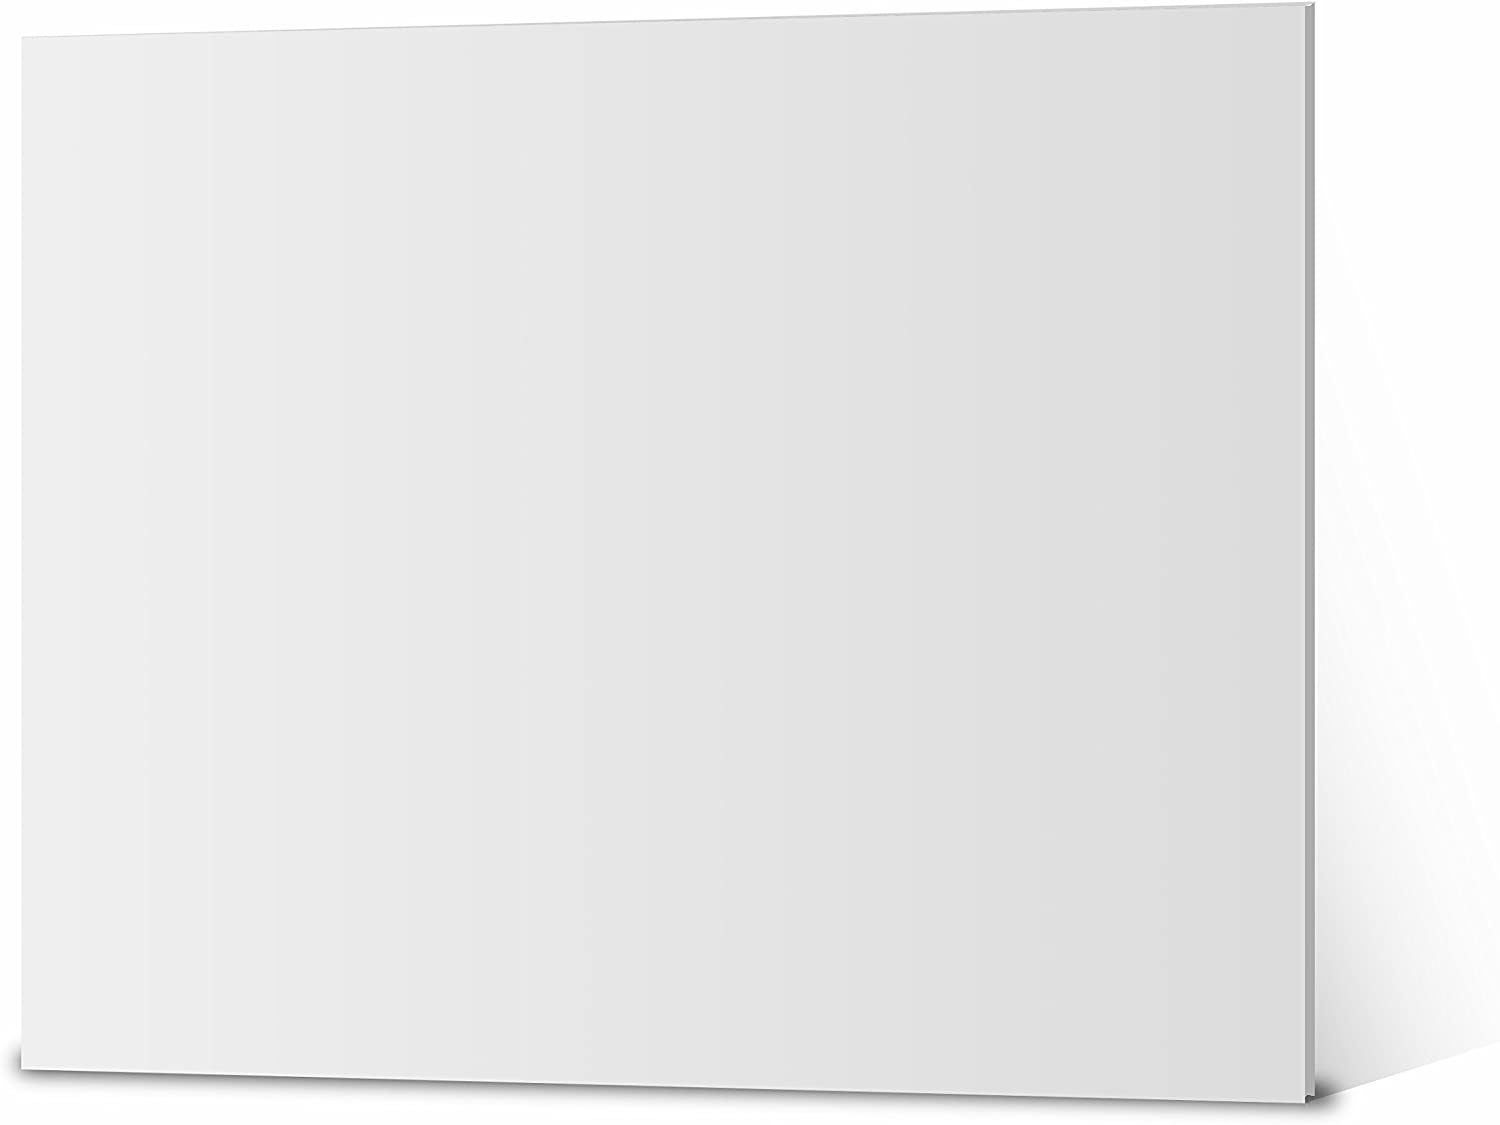 ELMERS Products Sturdy Foam Board (950109), 25 count